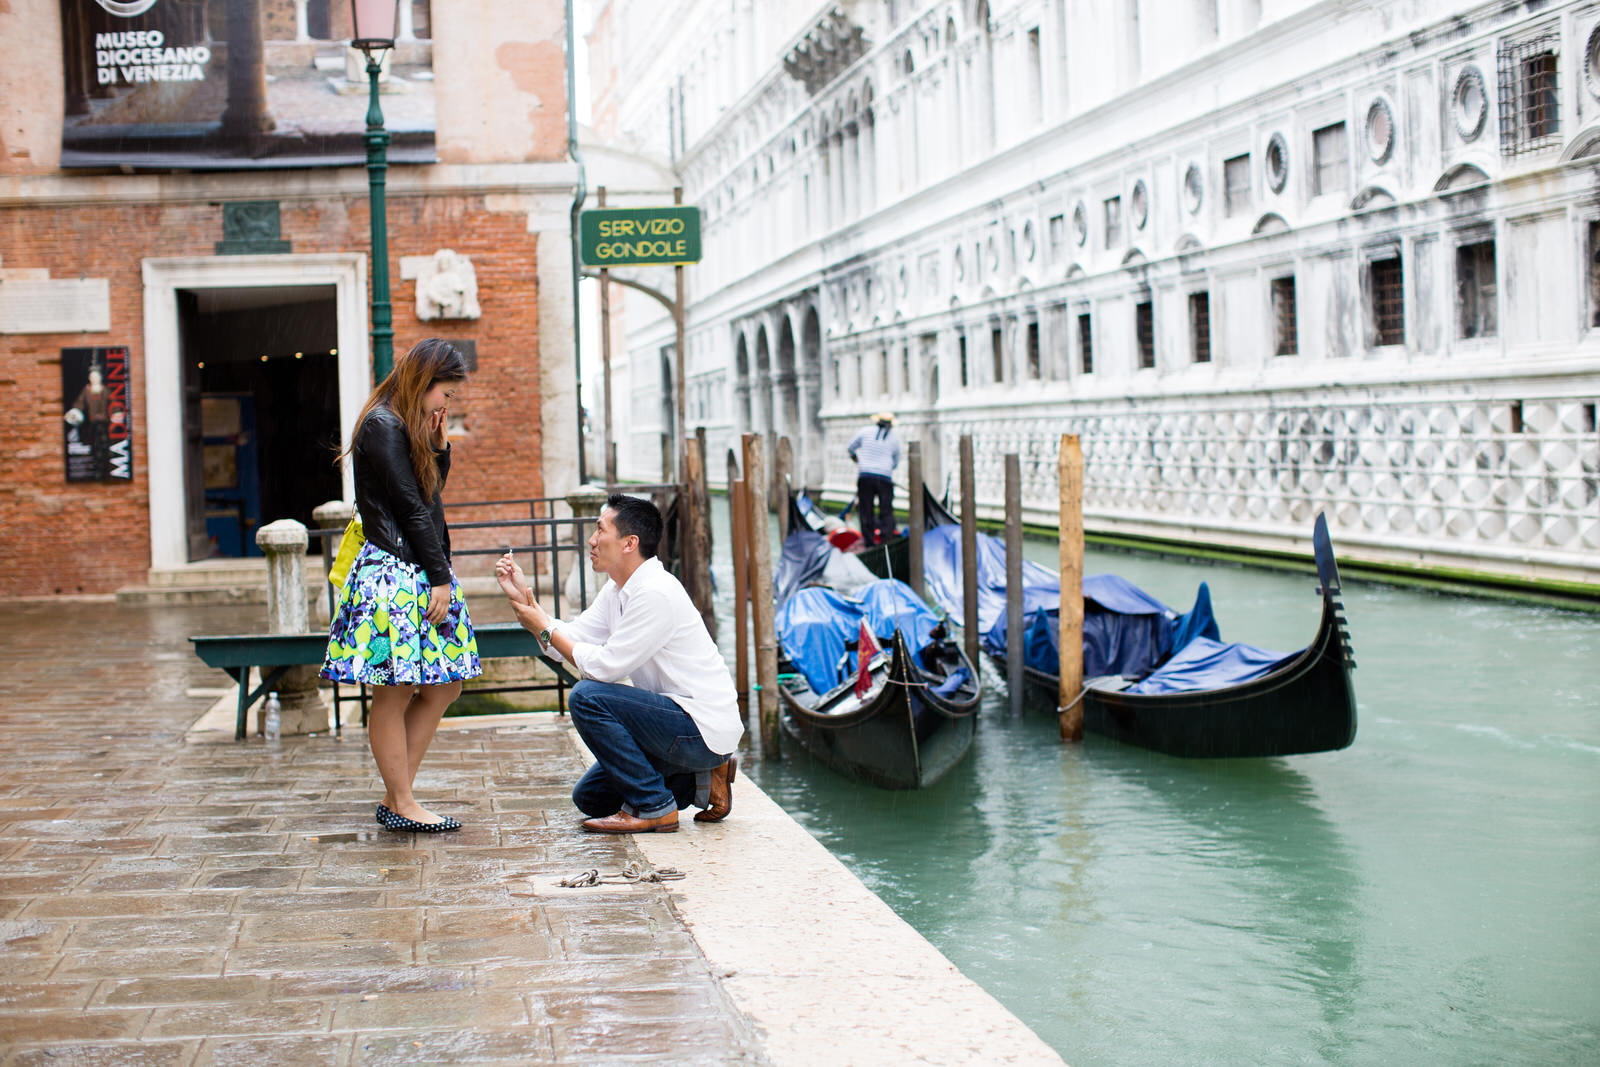 Marriage Proposal Venice Italy | Engagement photography VeniceMarriage Proposal Venice Italy | Engagement photography Venice wedding proposal in one of most romantic city in the world,What a wonderful surprise for her.